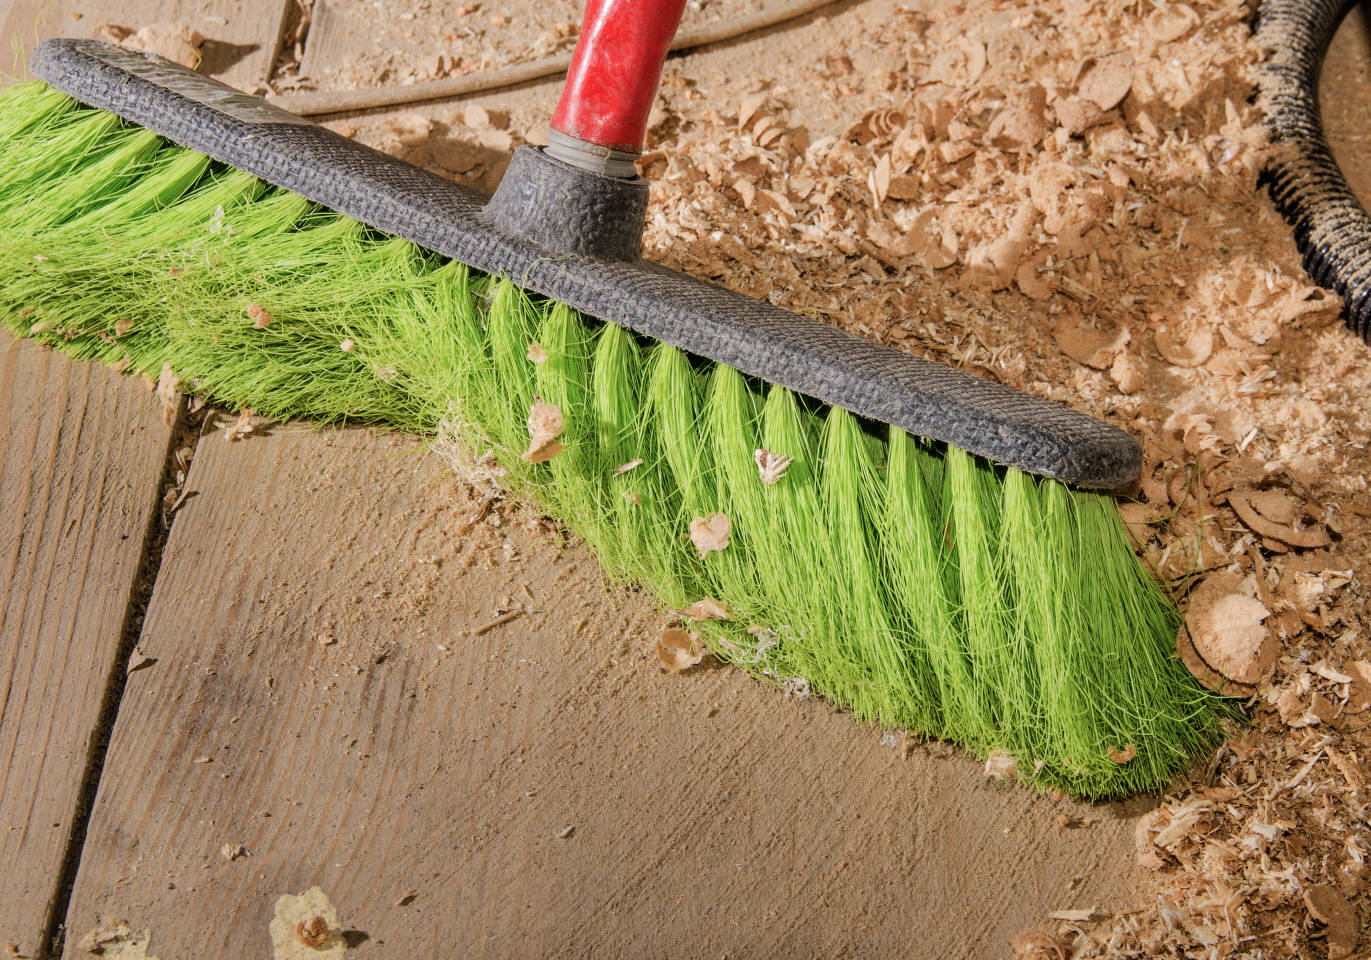 sweeping up sawdust with a shop broom